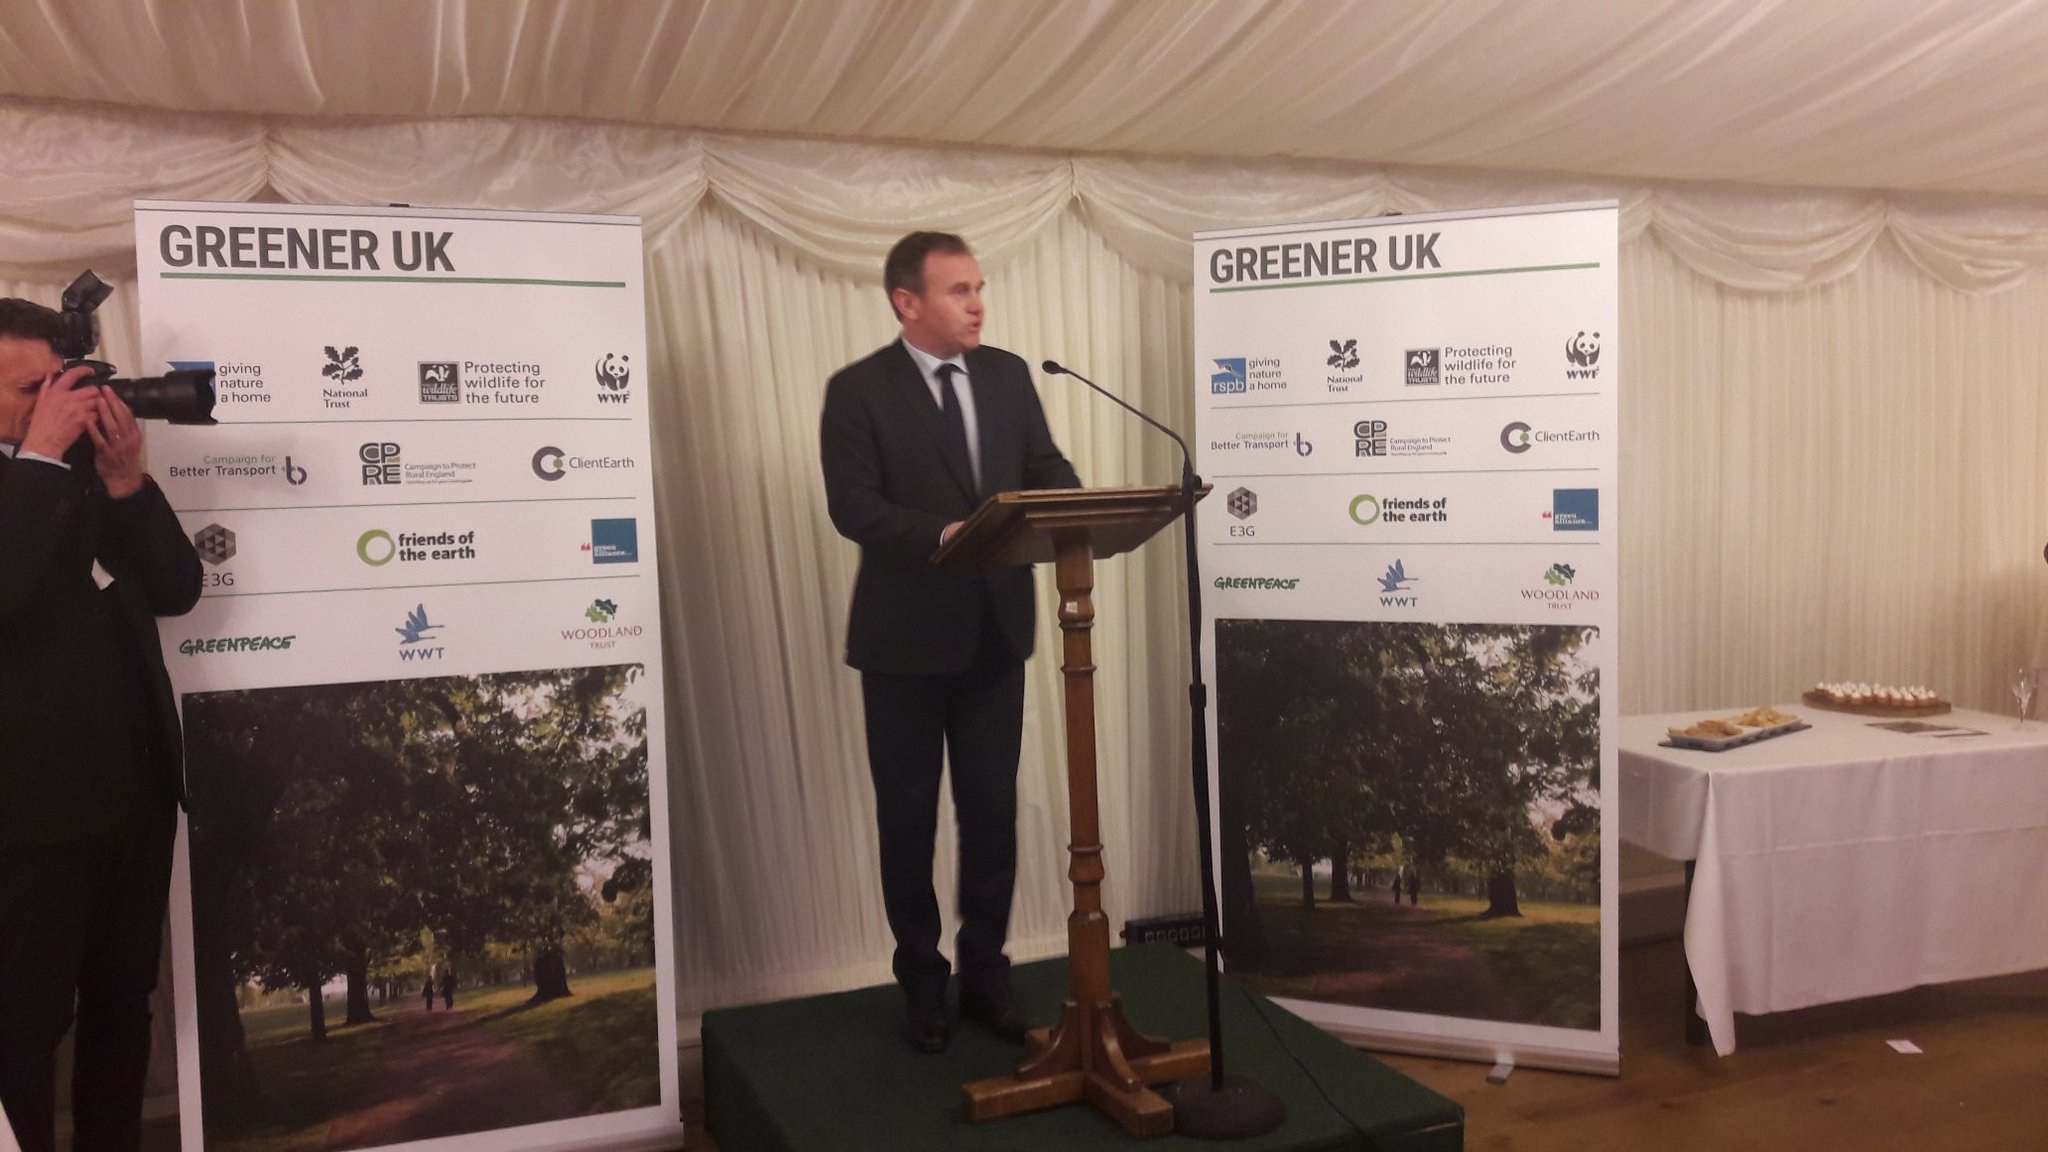 .@DefraGovUK Minister George Eustice confirms habitats directive will be transposed across in Great Repeal Bill #GreenerUK https://t.co/RC5b752cbb